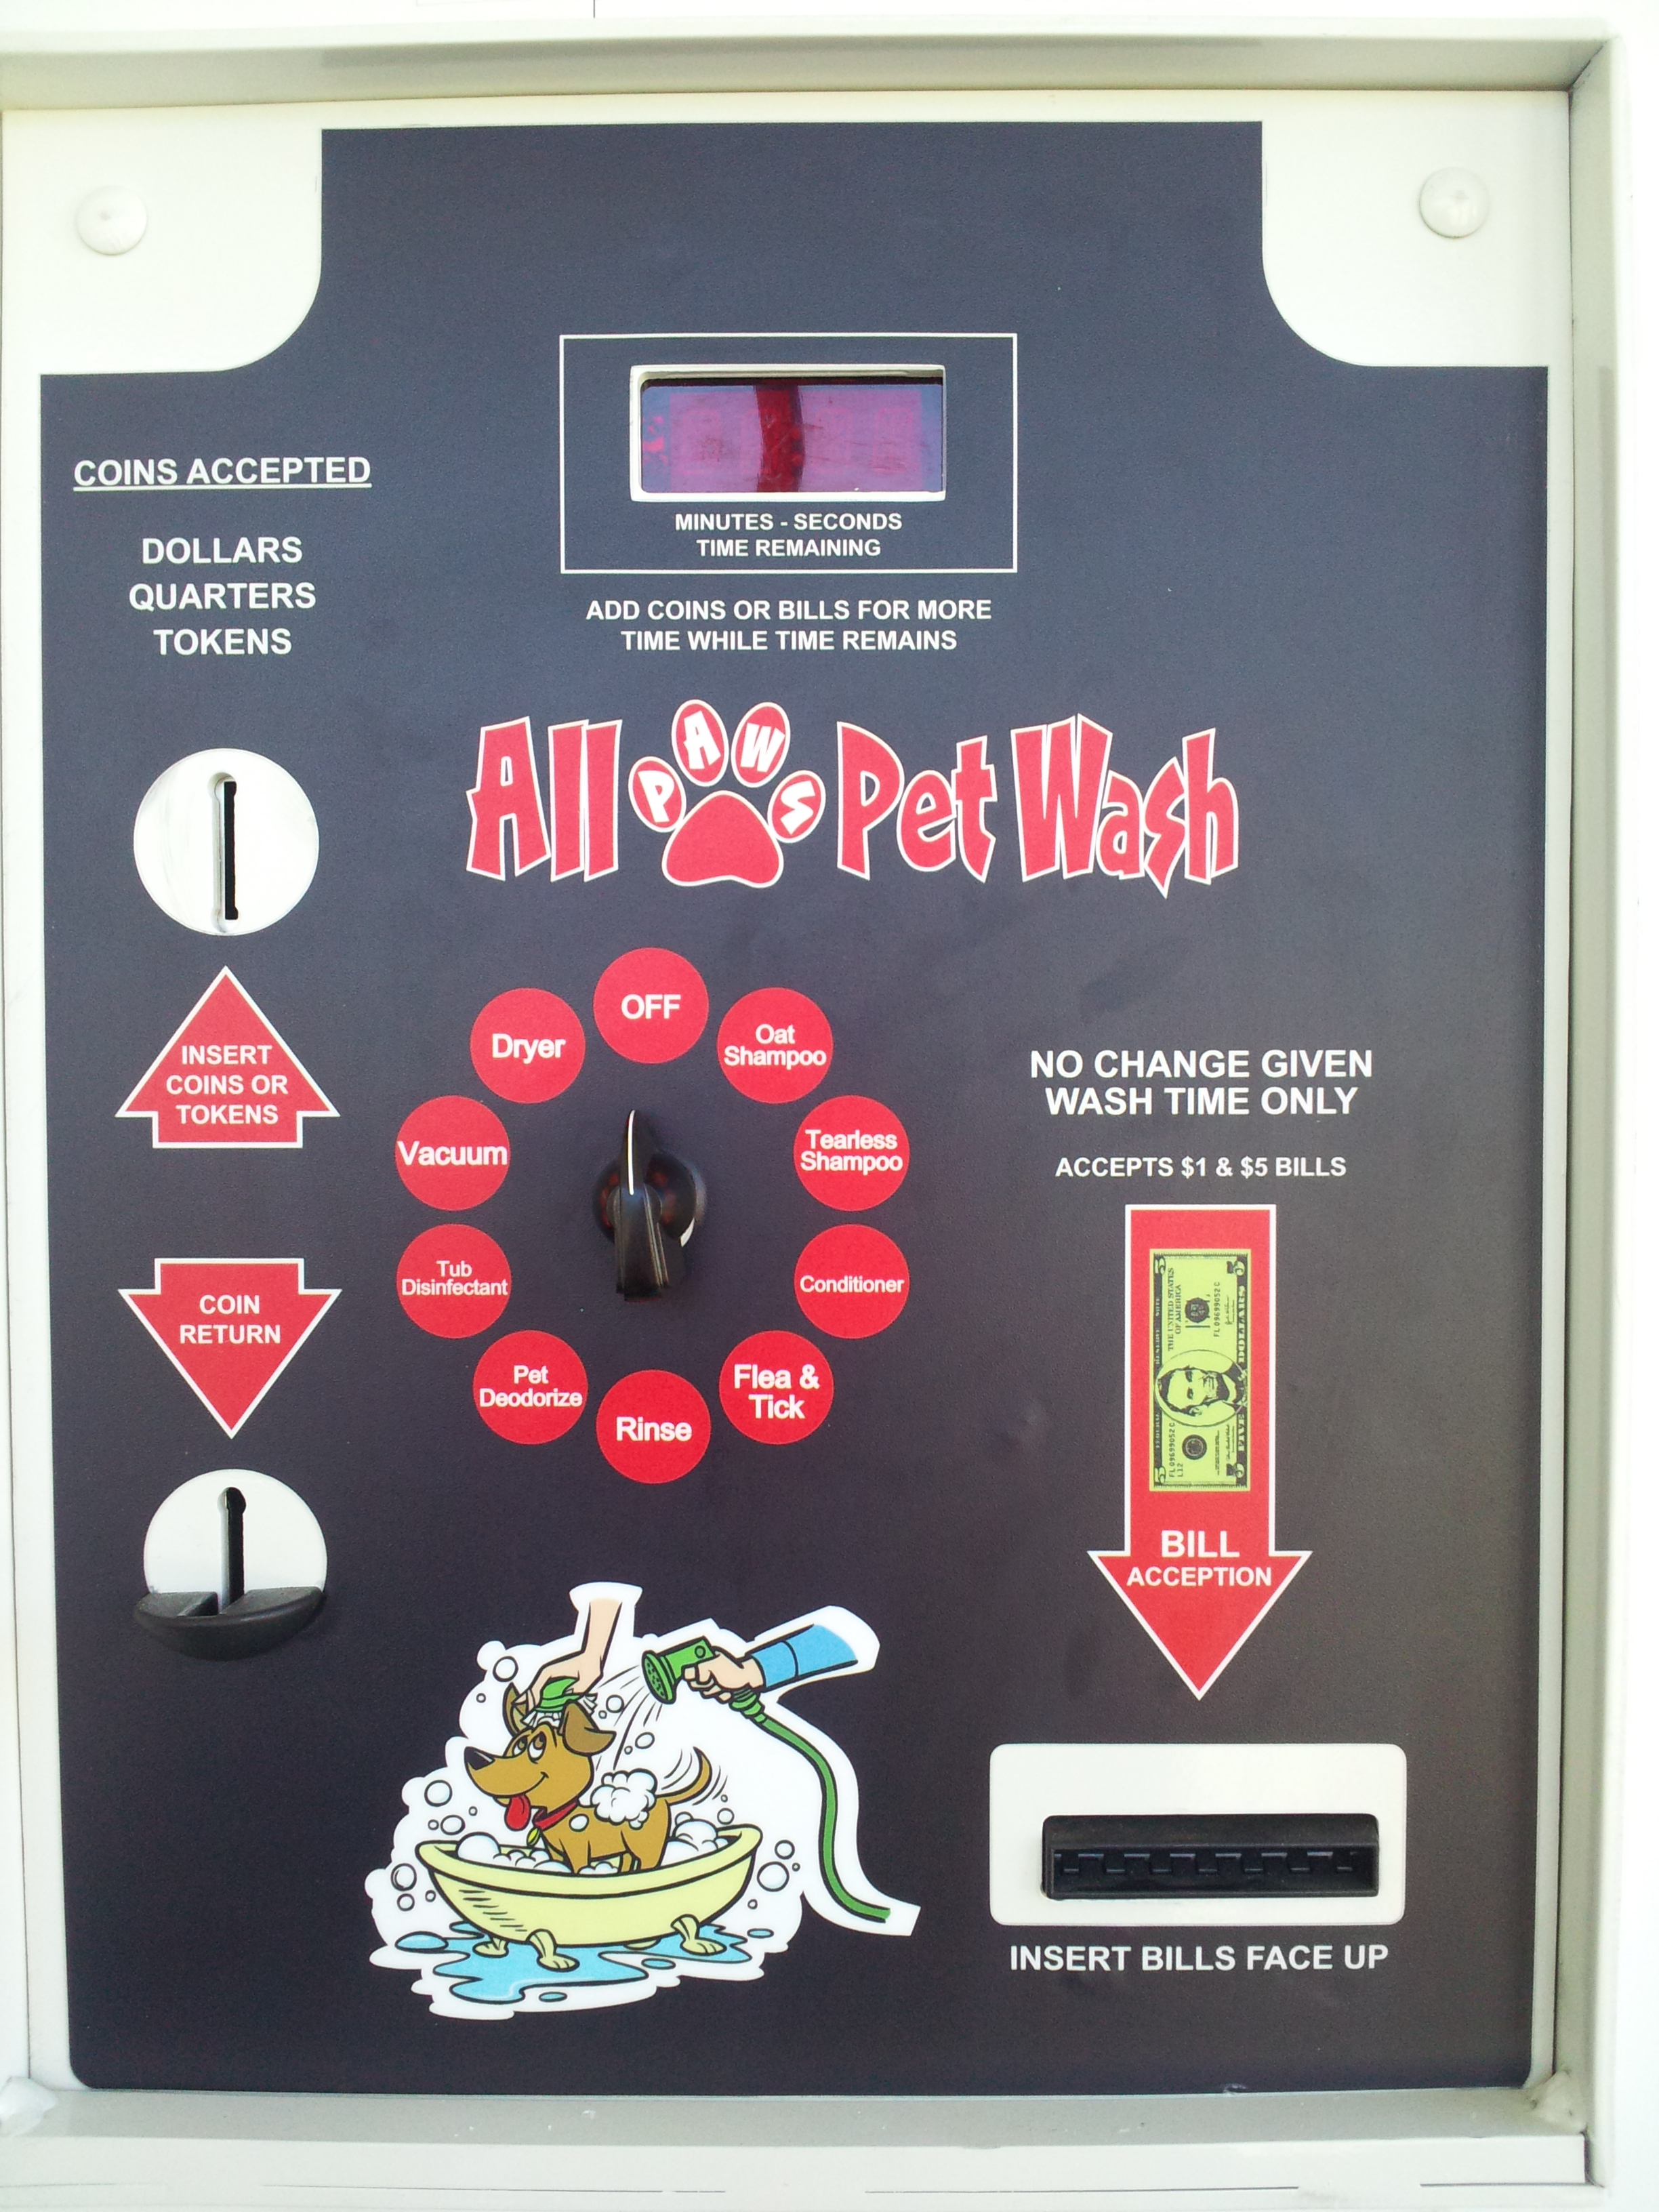 Coin operated pet wash dog bathing station all paws pet wash coin operated dog wash solutioingenieria Image collections